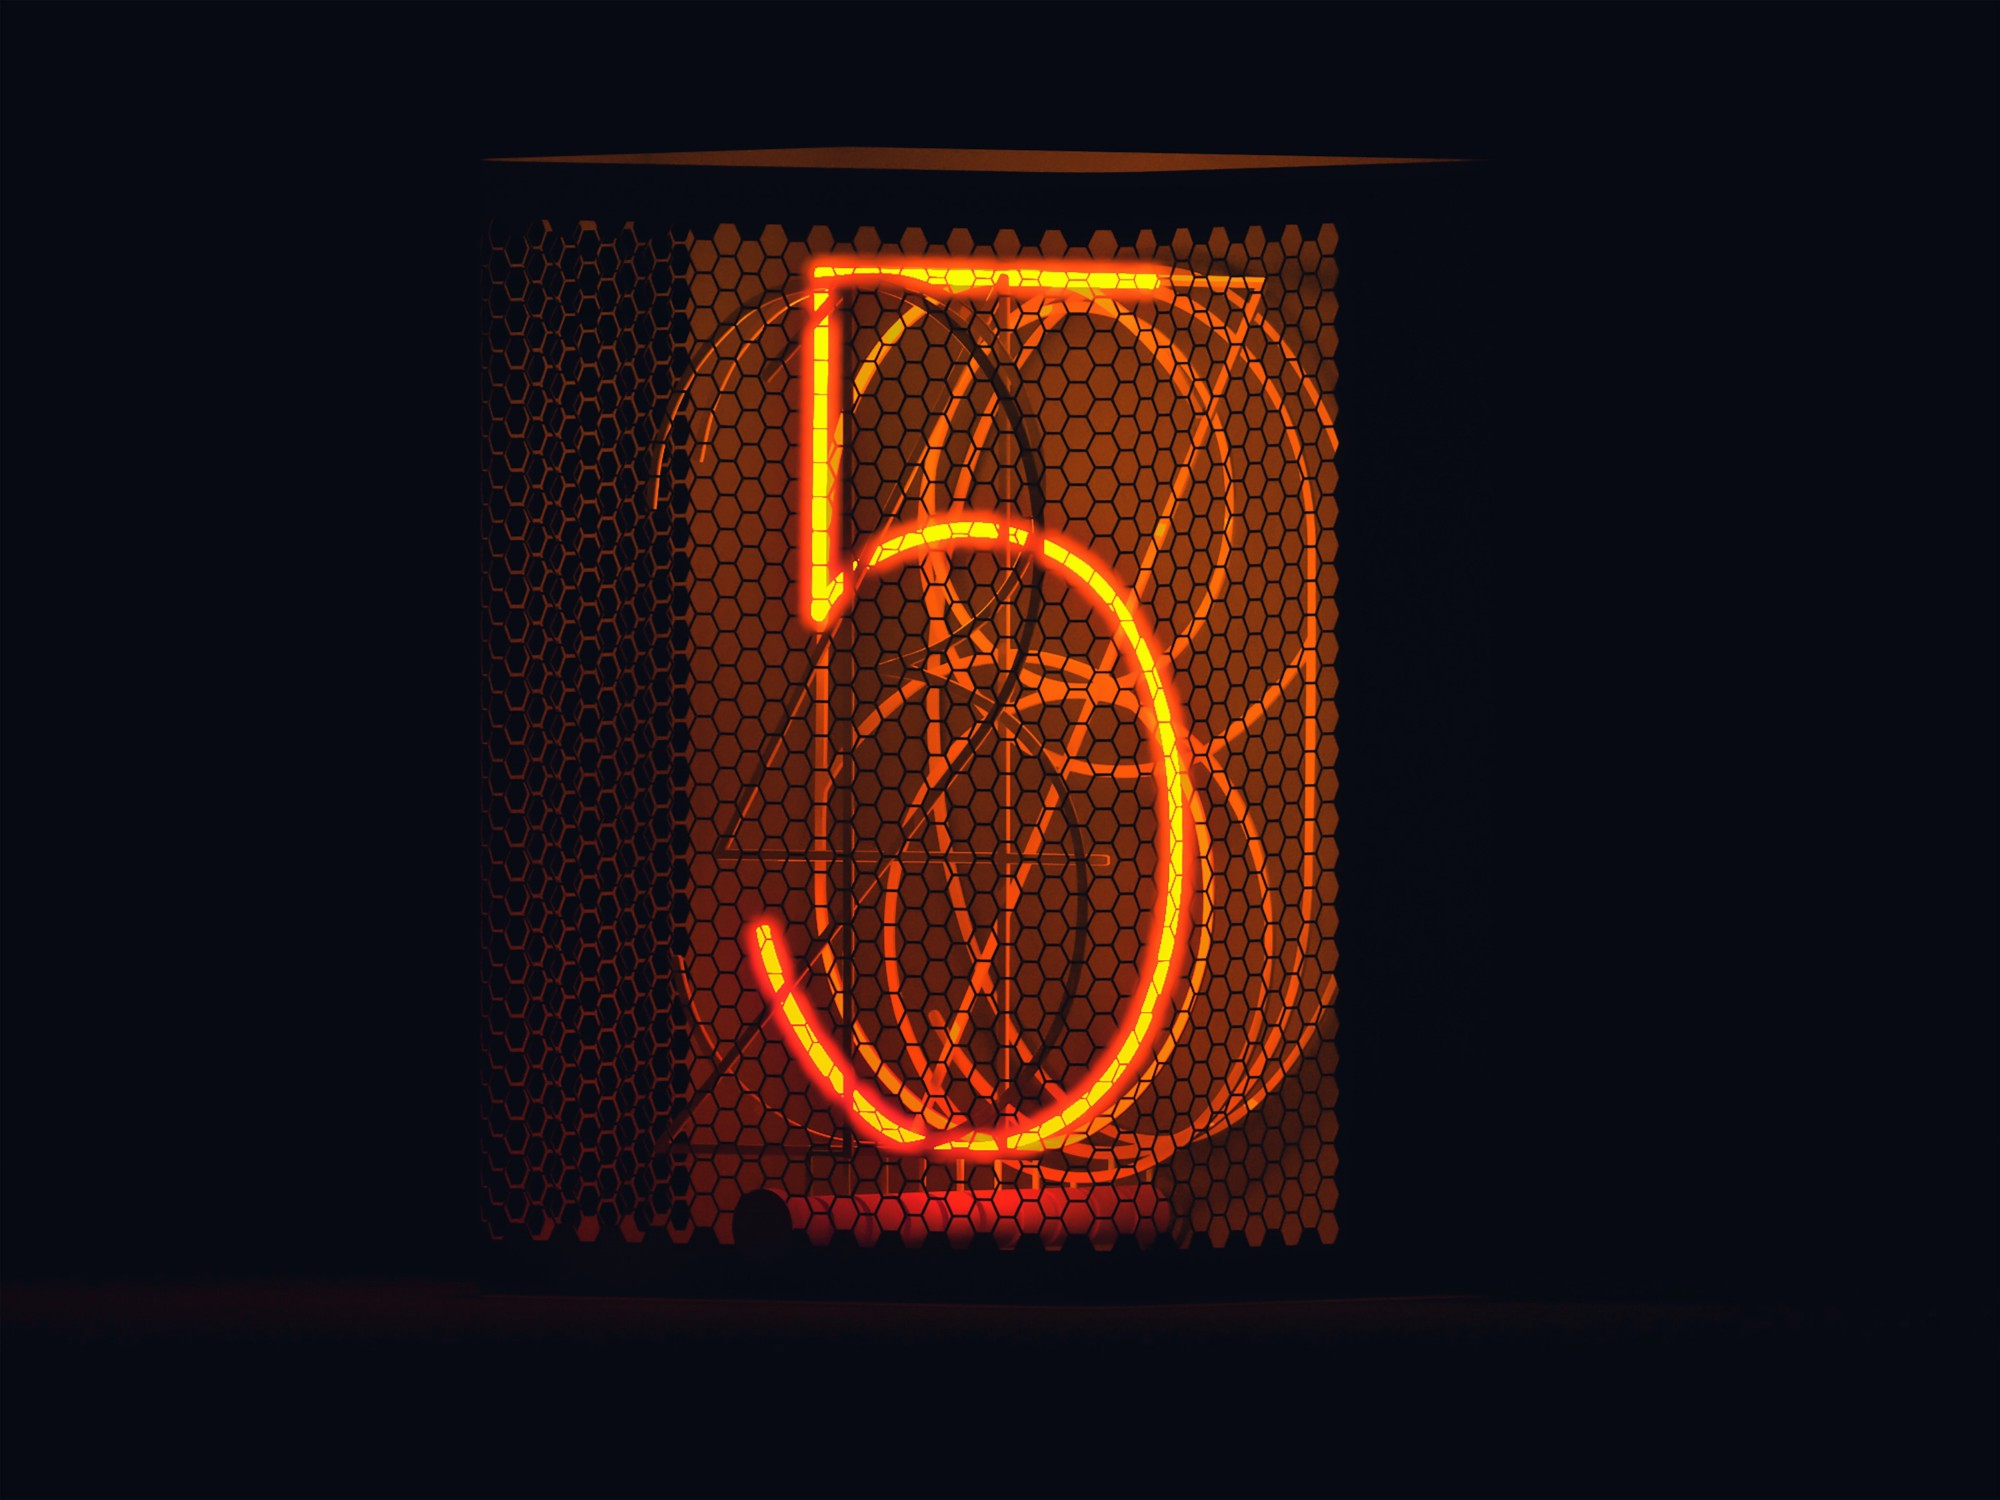 neon orange numbers, overlapping, on black background, with the number 5 the brightest